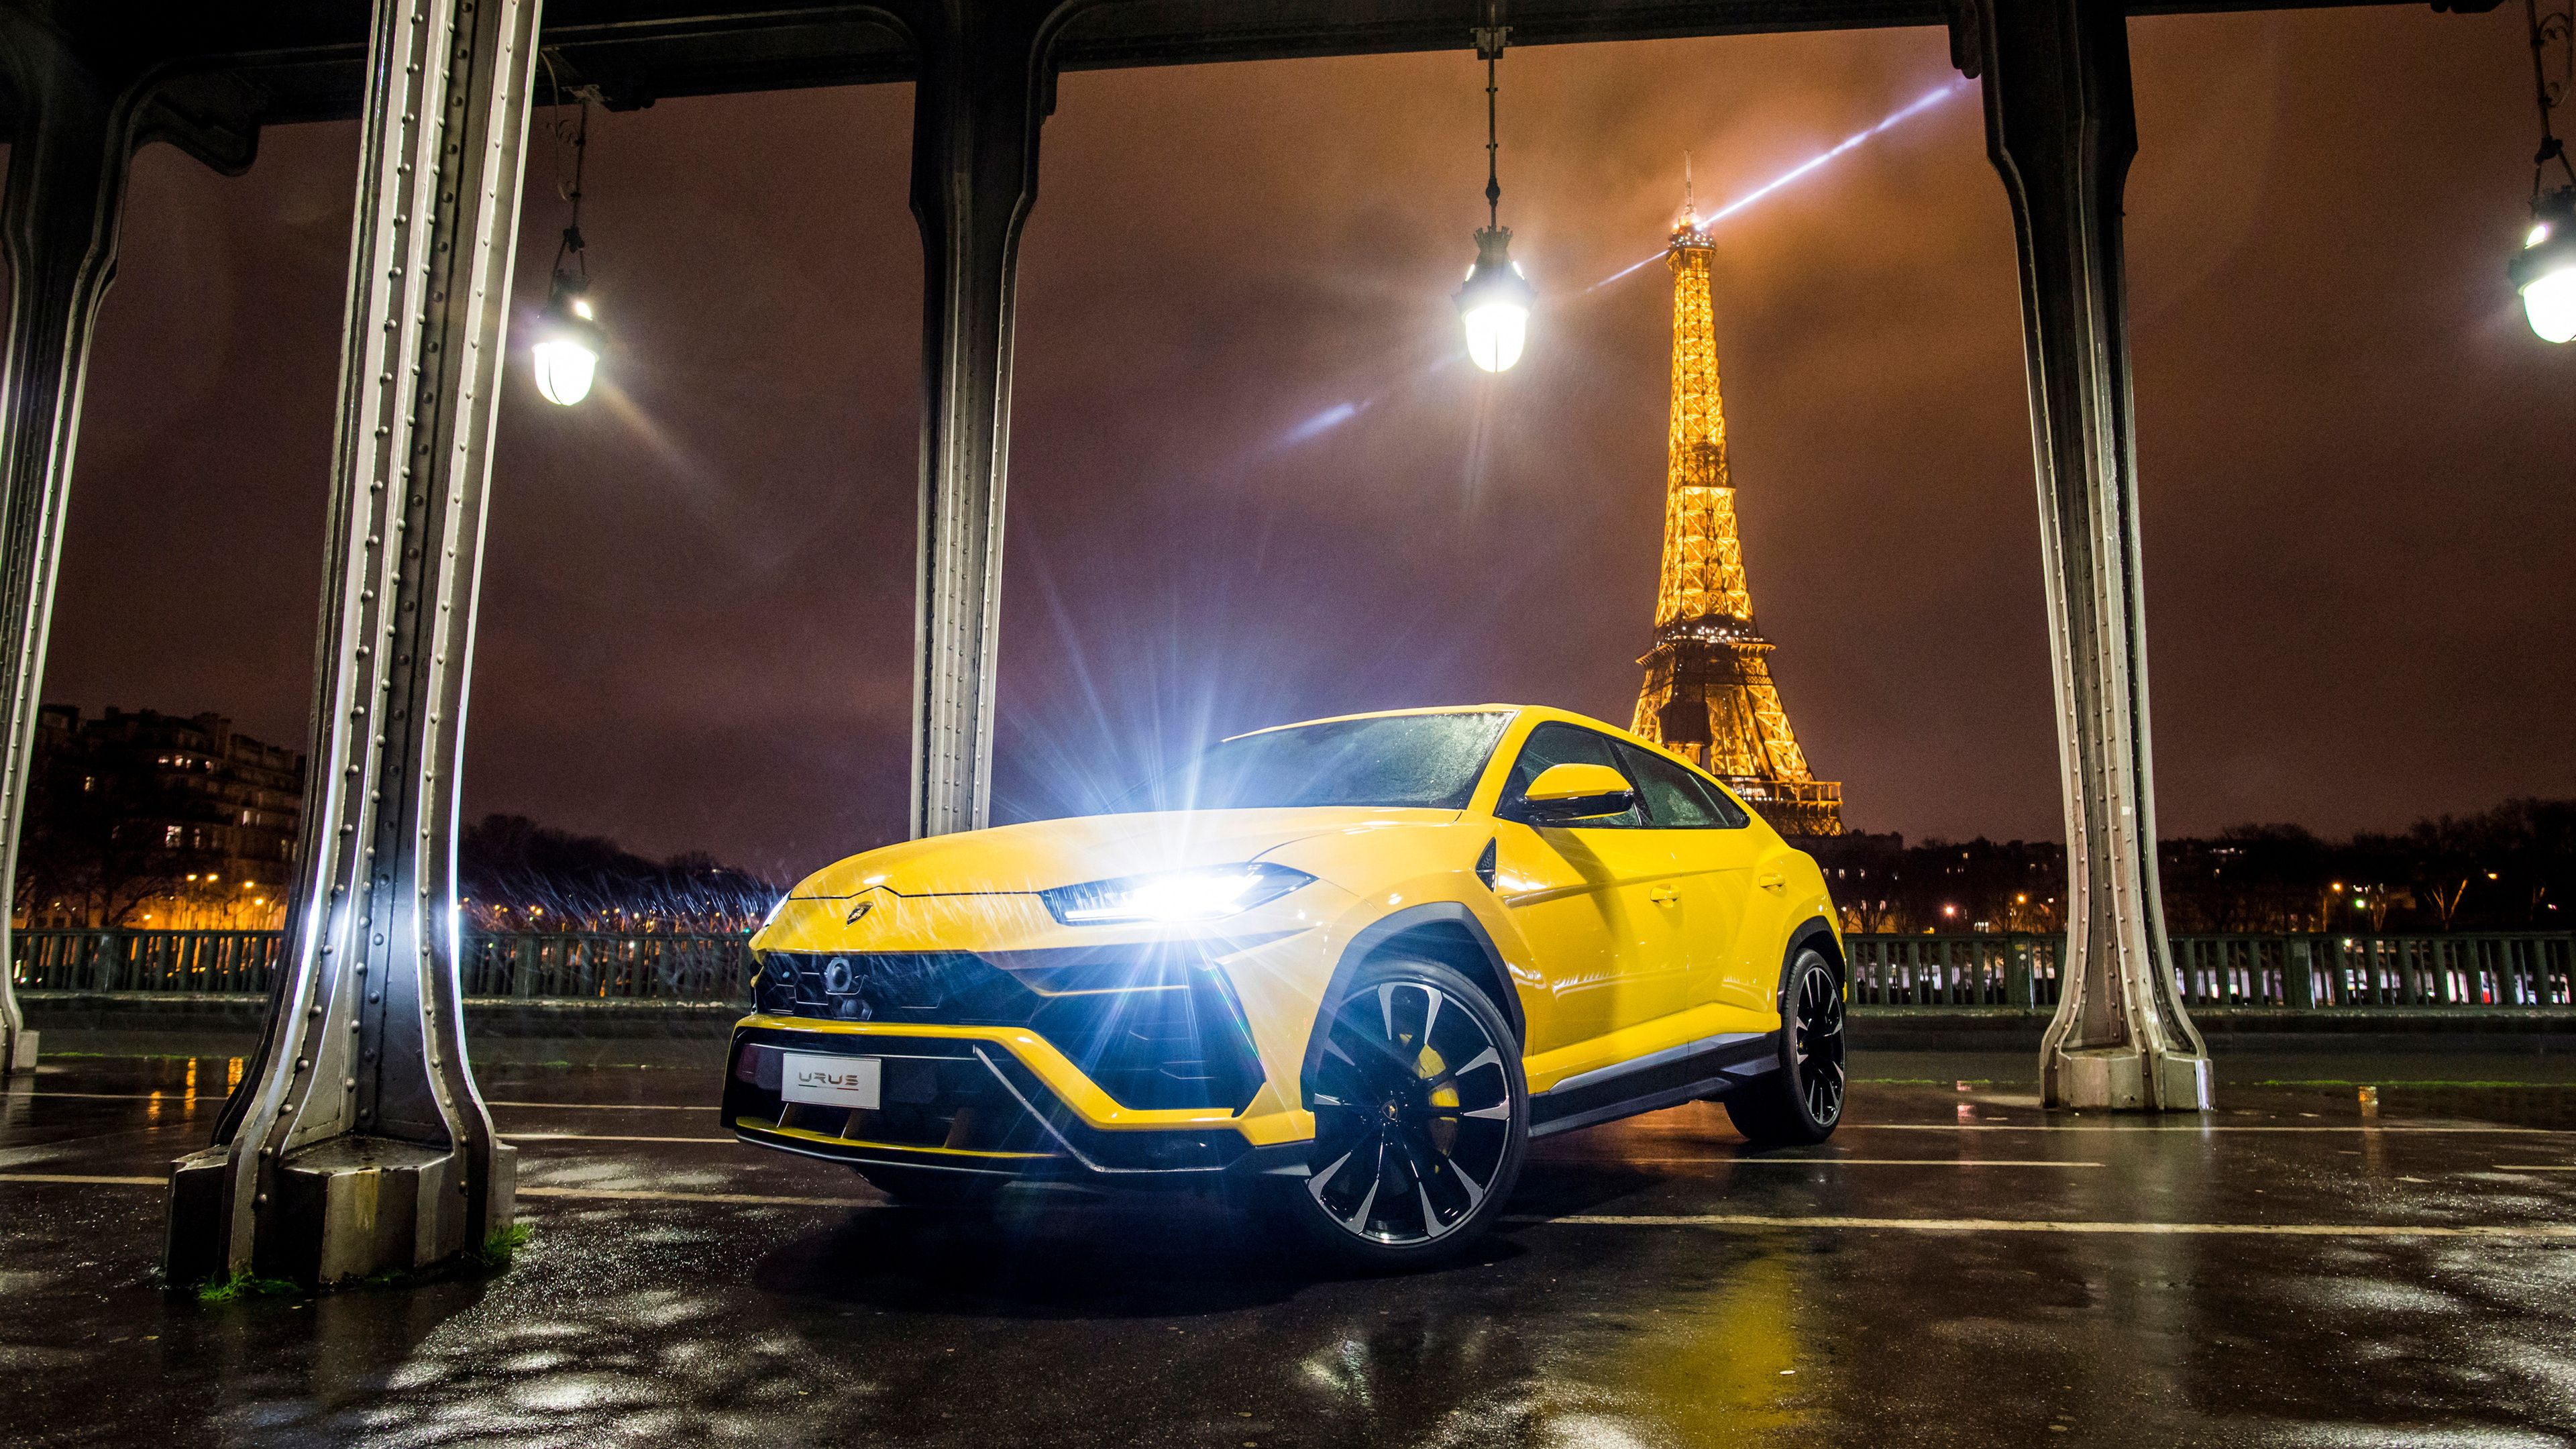 lamborghini urus 2018 suv wallpapers, lamborghini wallpaperslamborghini urus 2018 suv wallpapers, lamborghini wallpapers, lamborghini urus wallpapers, hd wallpapers, cars wallpapers, 4k wallpapers, 2018 cars